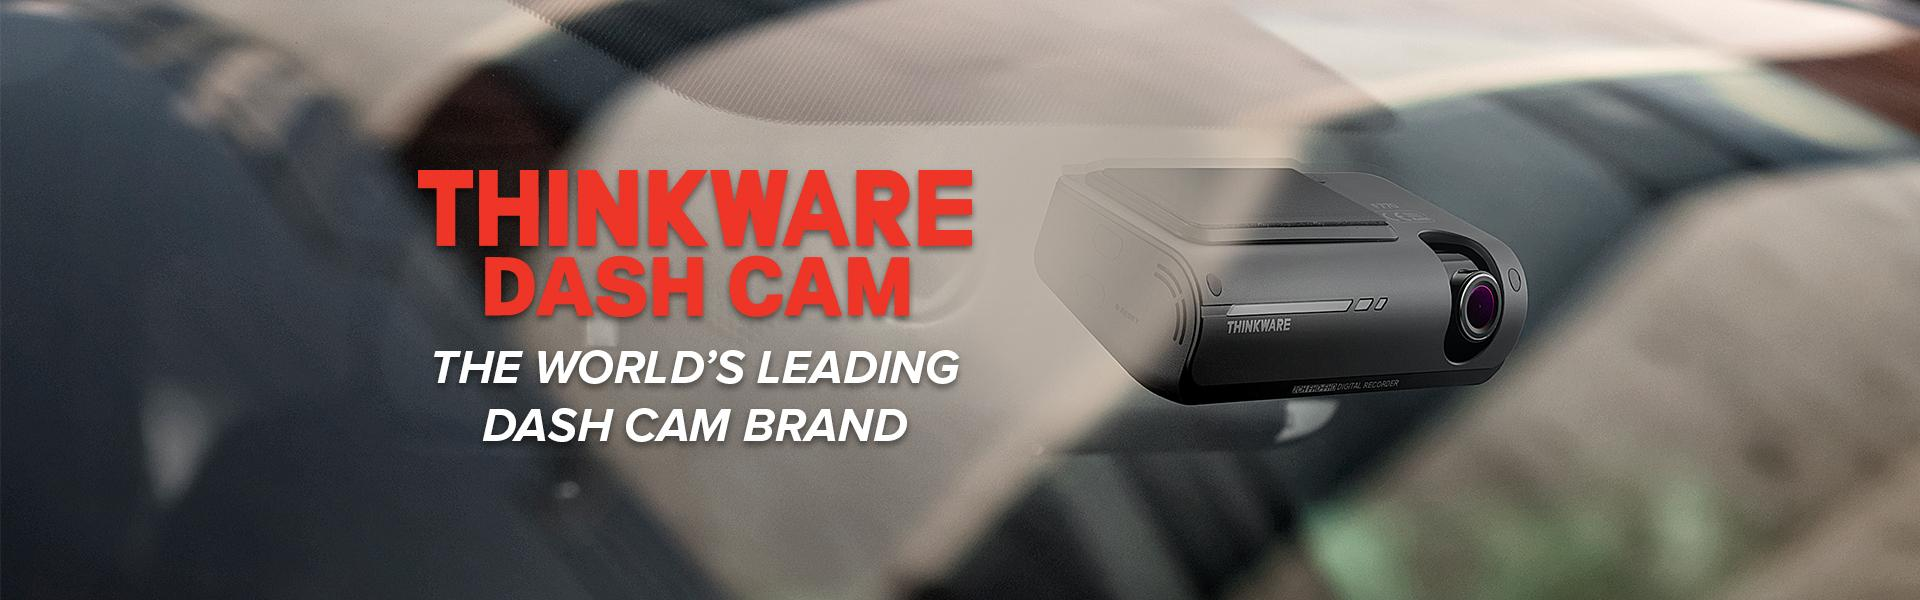 Thinkware Dashcams